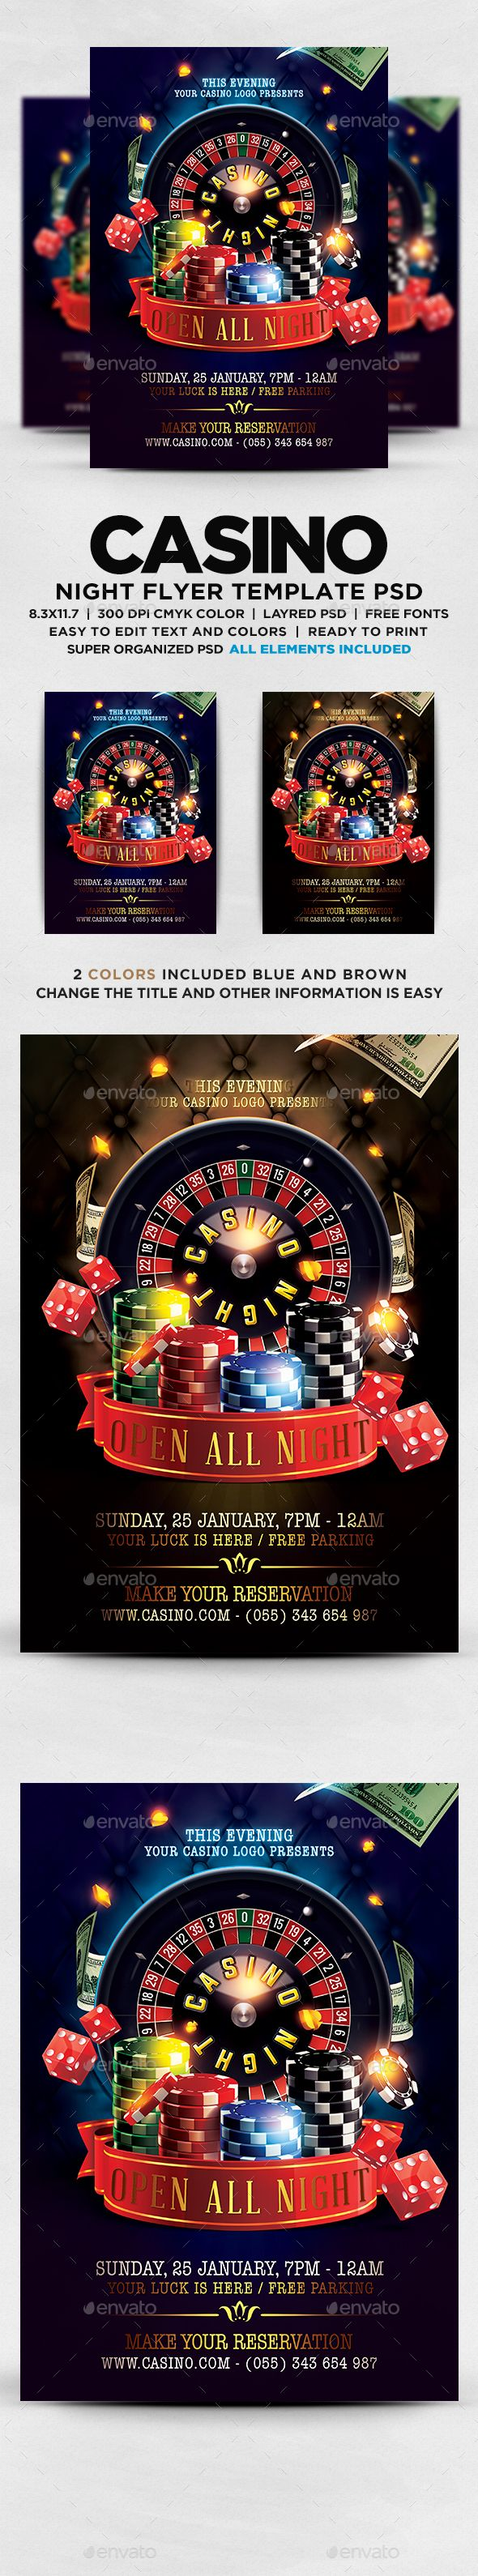 Casino Flyer — Photoshop PSD #neon #casino night • Available here → https://graphicriver.net/item/casino-flyer/19240073?ref=pxcr